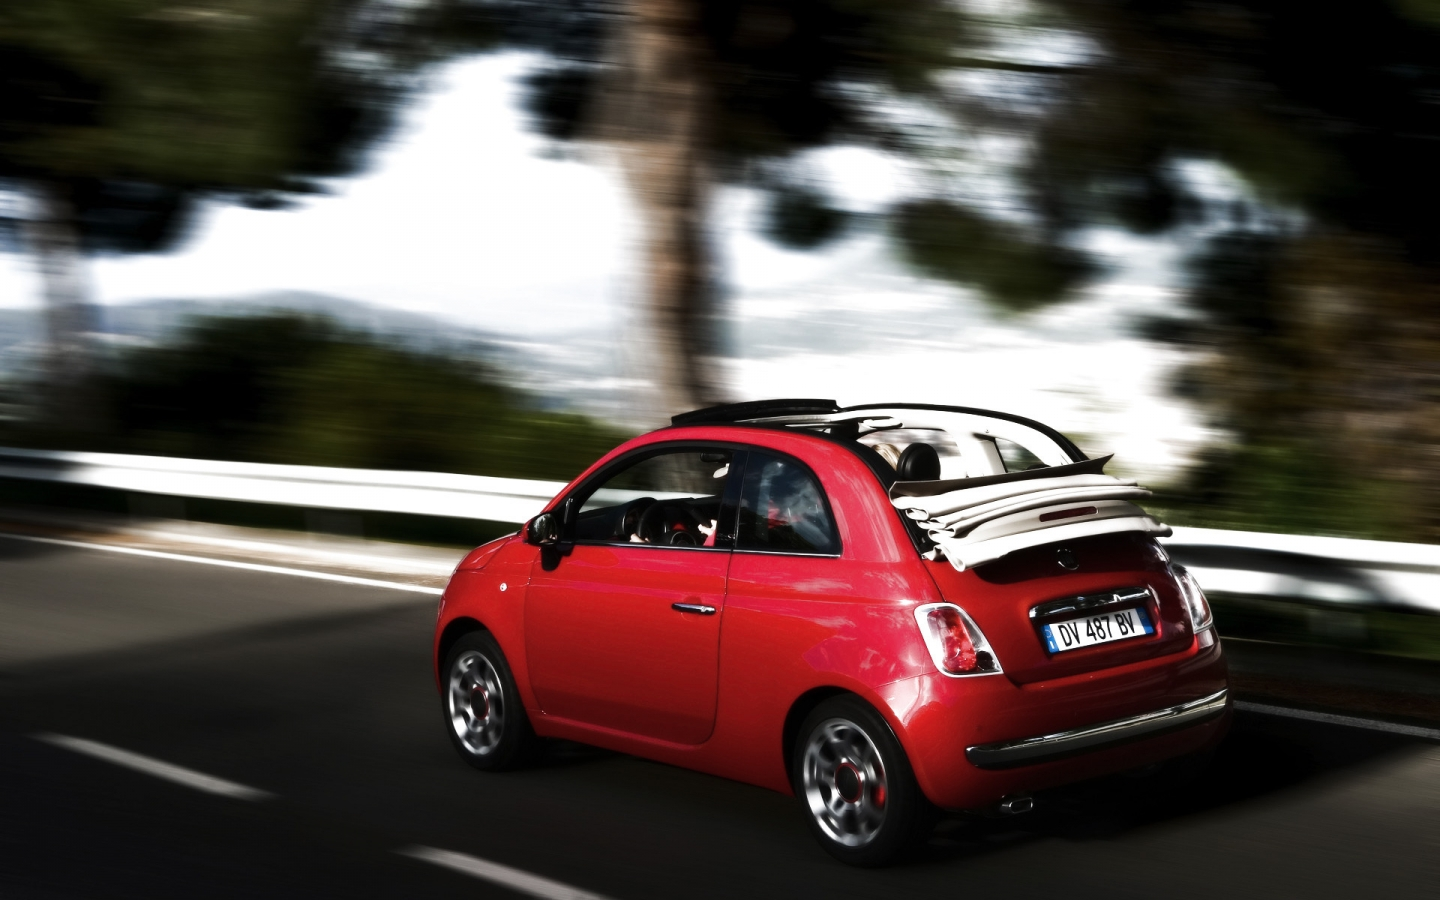 2010 Fiat 500C Speed for 1440 x 900 widescreen resolution